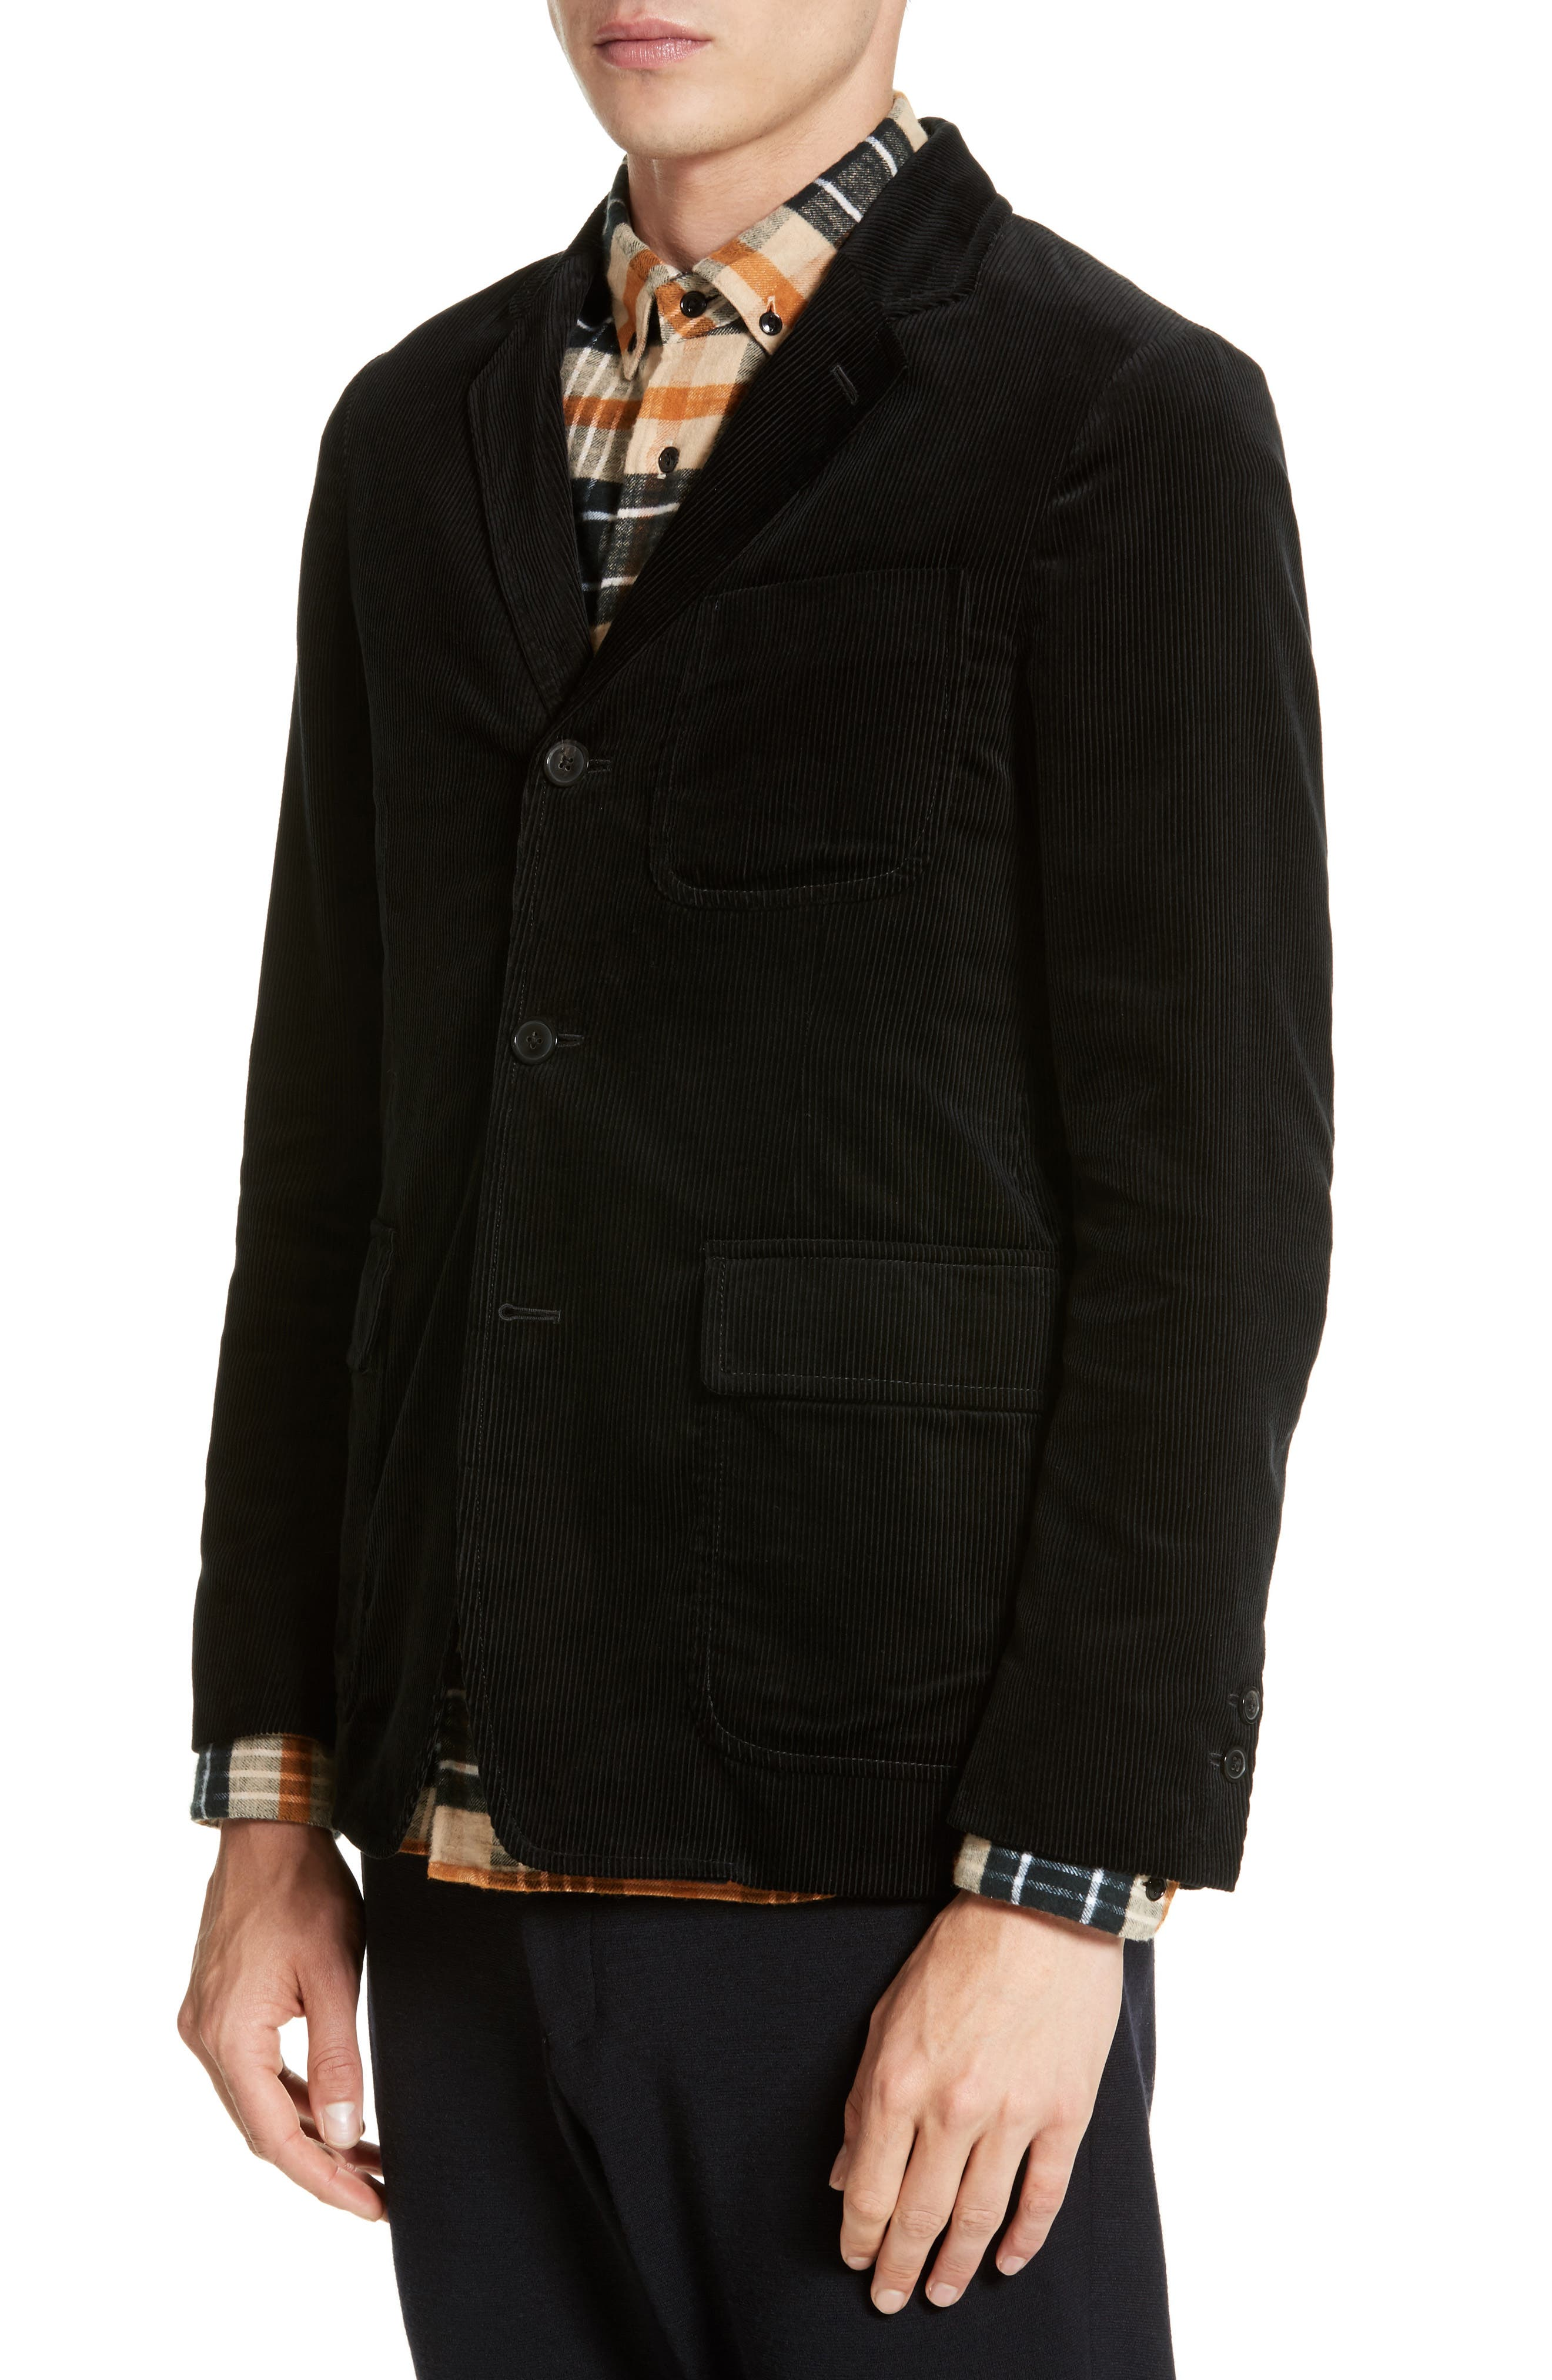 Sea Island Corduroy Jacket,                             Alternate thumbnail 4, color,                             Black